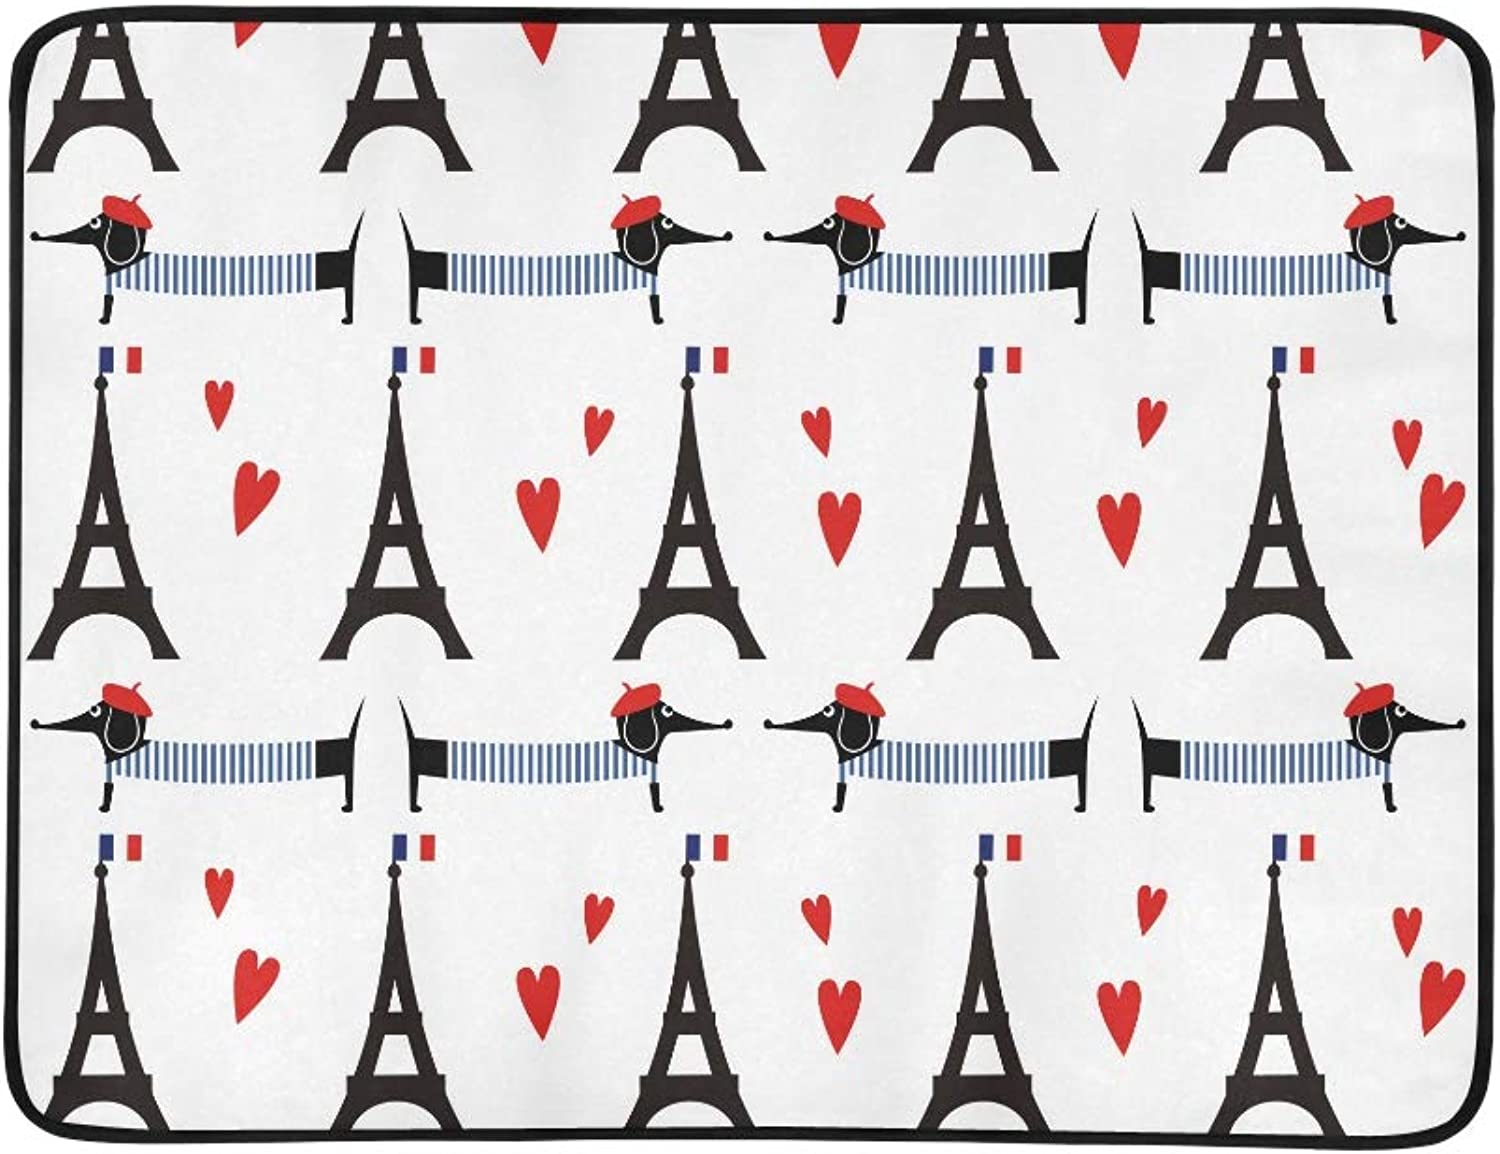 Dogs with Tour Paris Eiffel Tower Pattern Pattern Portable and Foldable Blanket Mat 60x78 Inch Handy Mat for Camping Picnic Beach Indoor Outdoor Travel